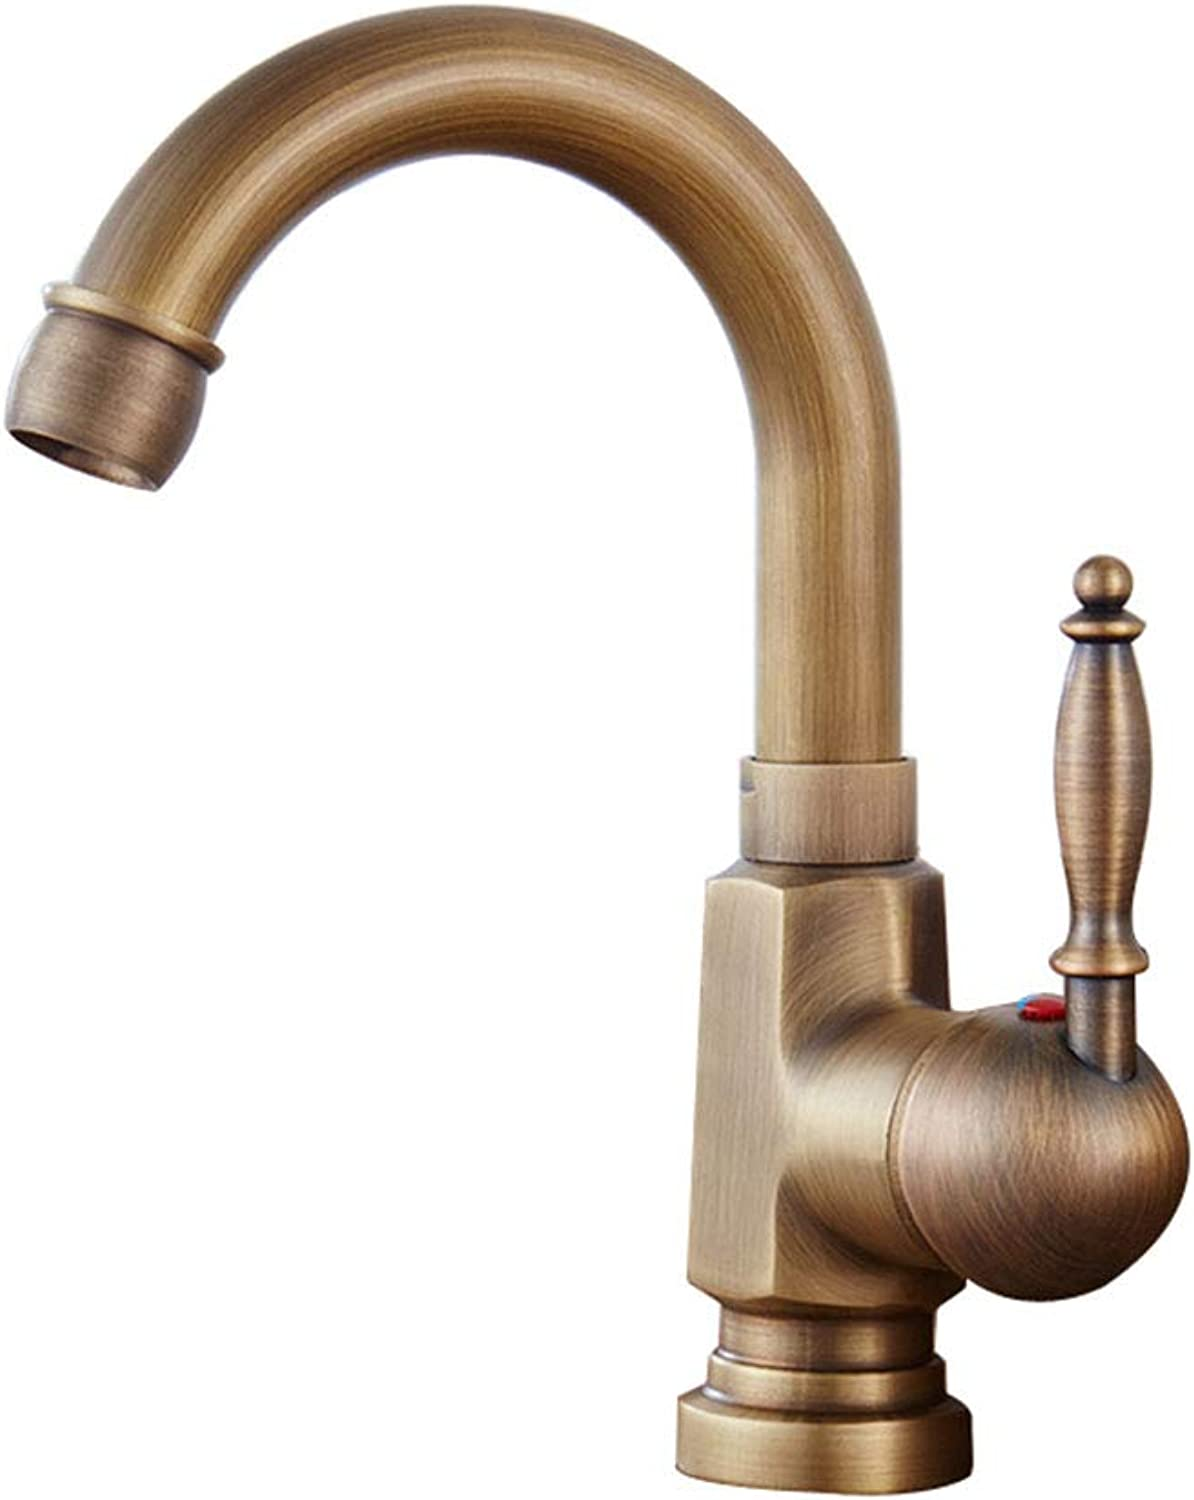 SEEKSUNG Kitchen faucet,Single Handle One Hole Electroplated Standard Spout Ordinary Kitchen Taps,for Kitchen Bathroom Sink